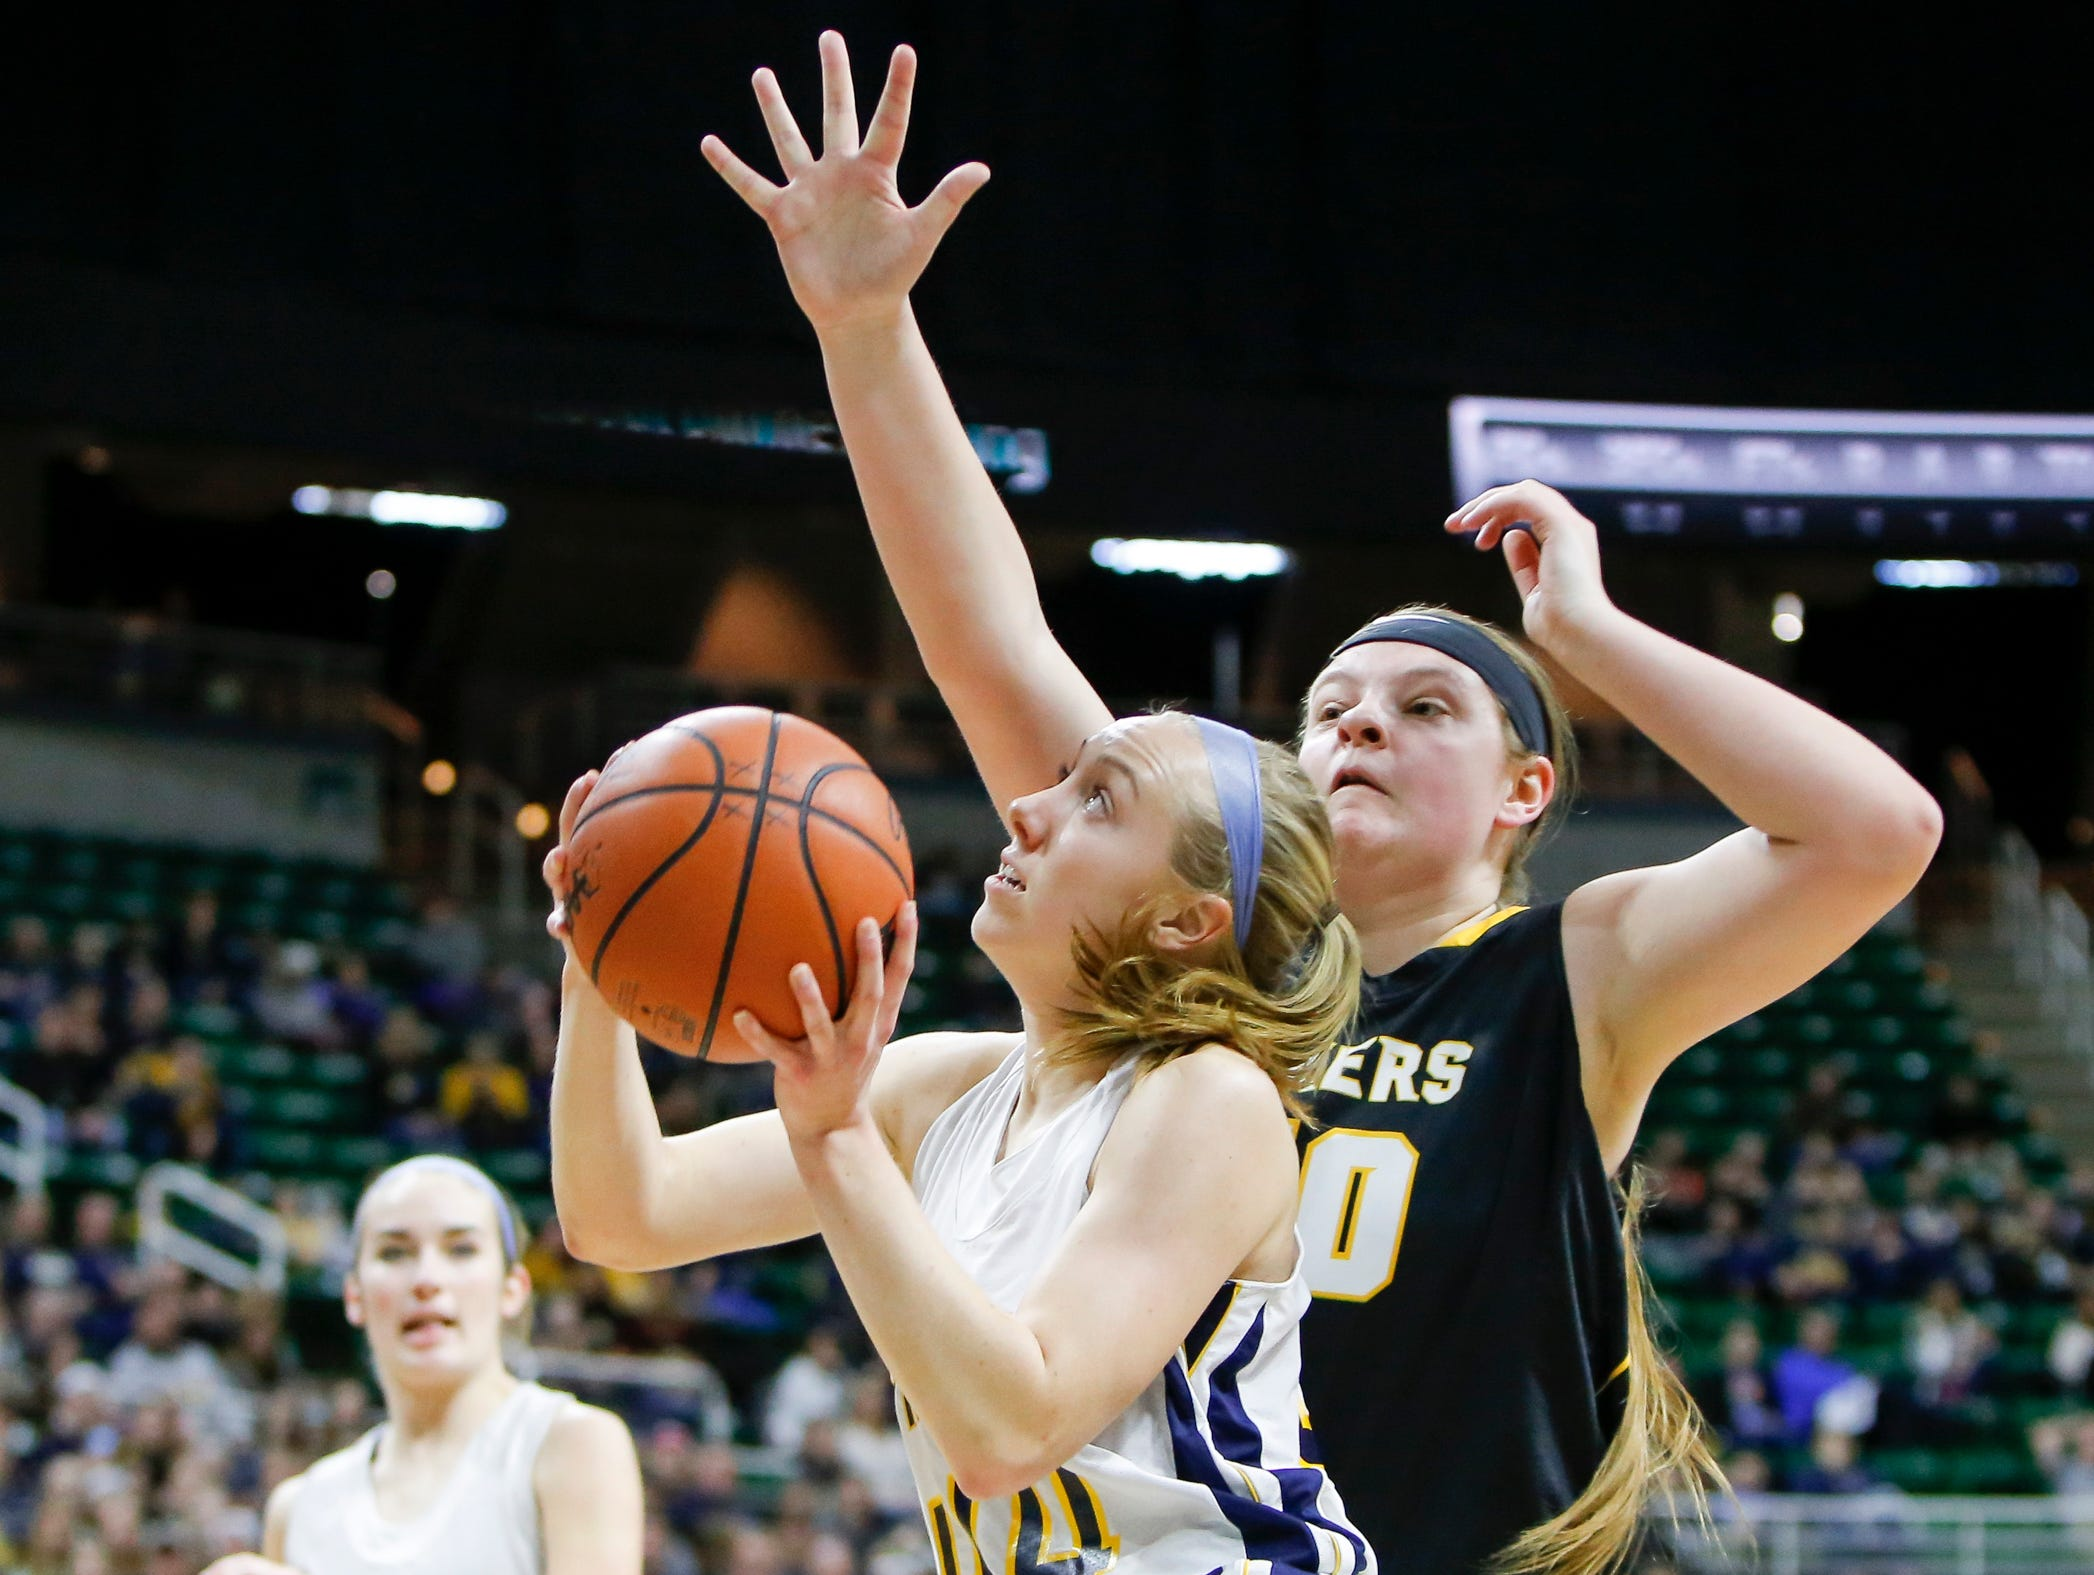 P-W's Brenna Wirth draws a foul against Maple City Glen Lake's Kaitlyn Schaub Thursday, March 16, 2017, during the Class B Semifinal at the Breslin in East Lansing. P-W won 64-51.